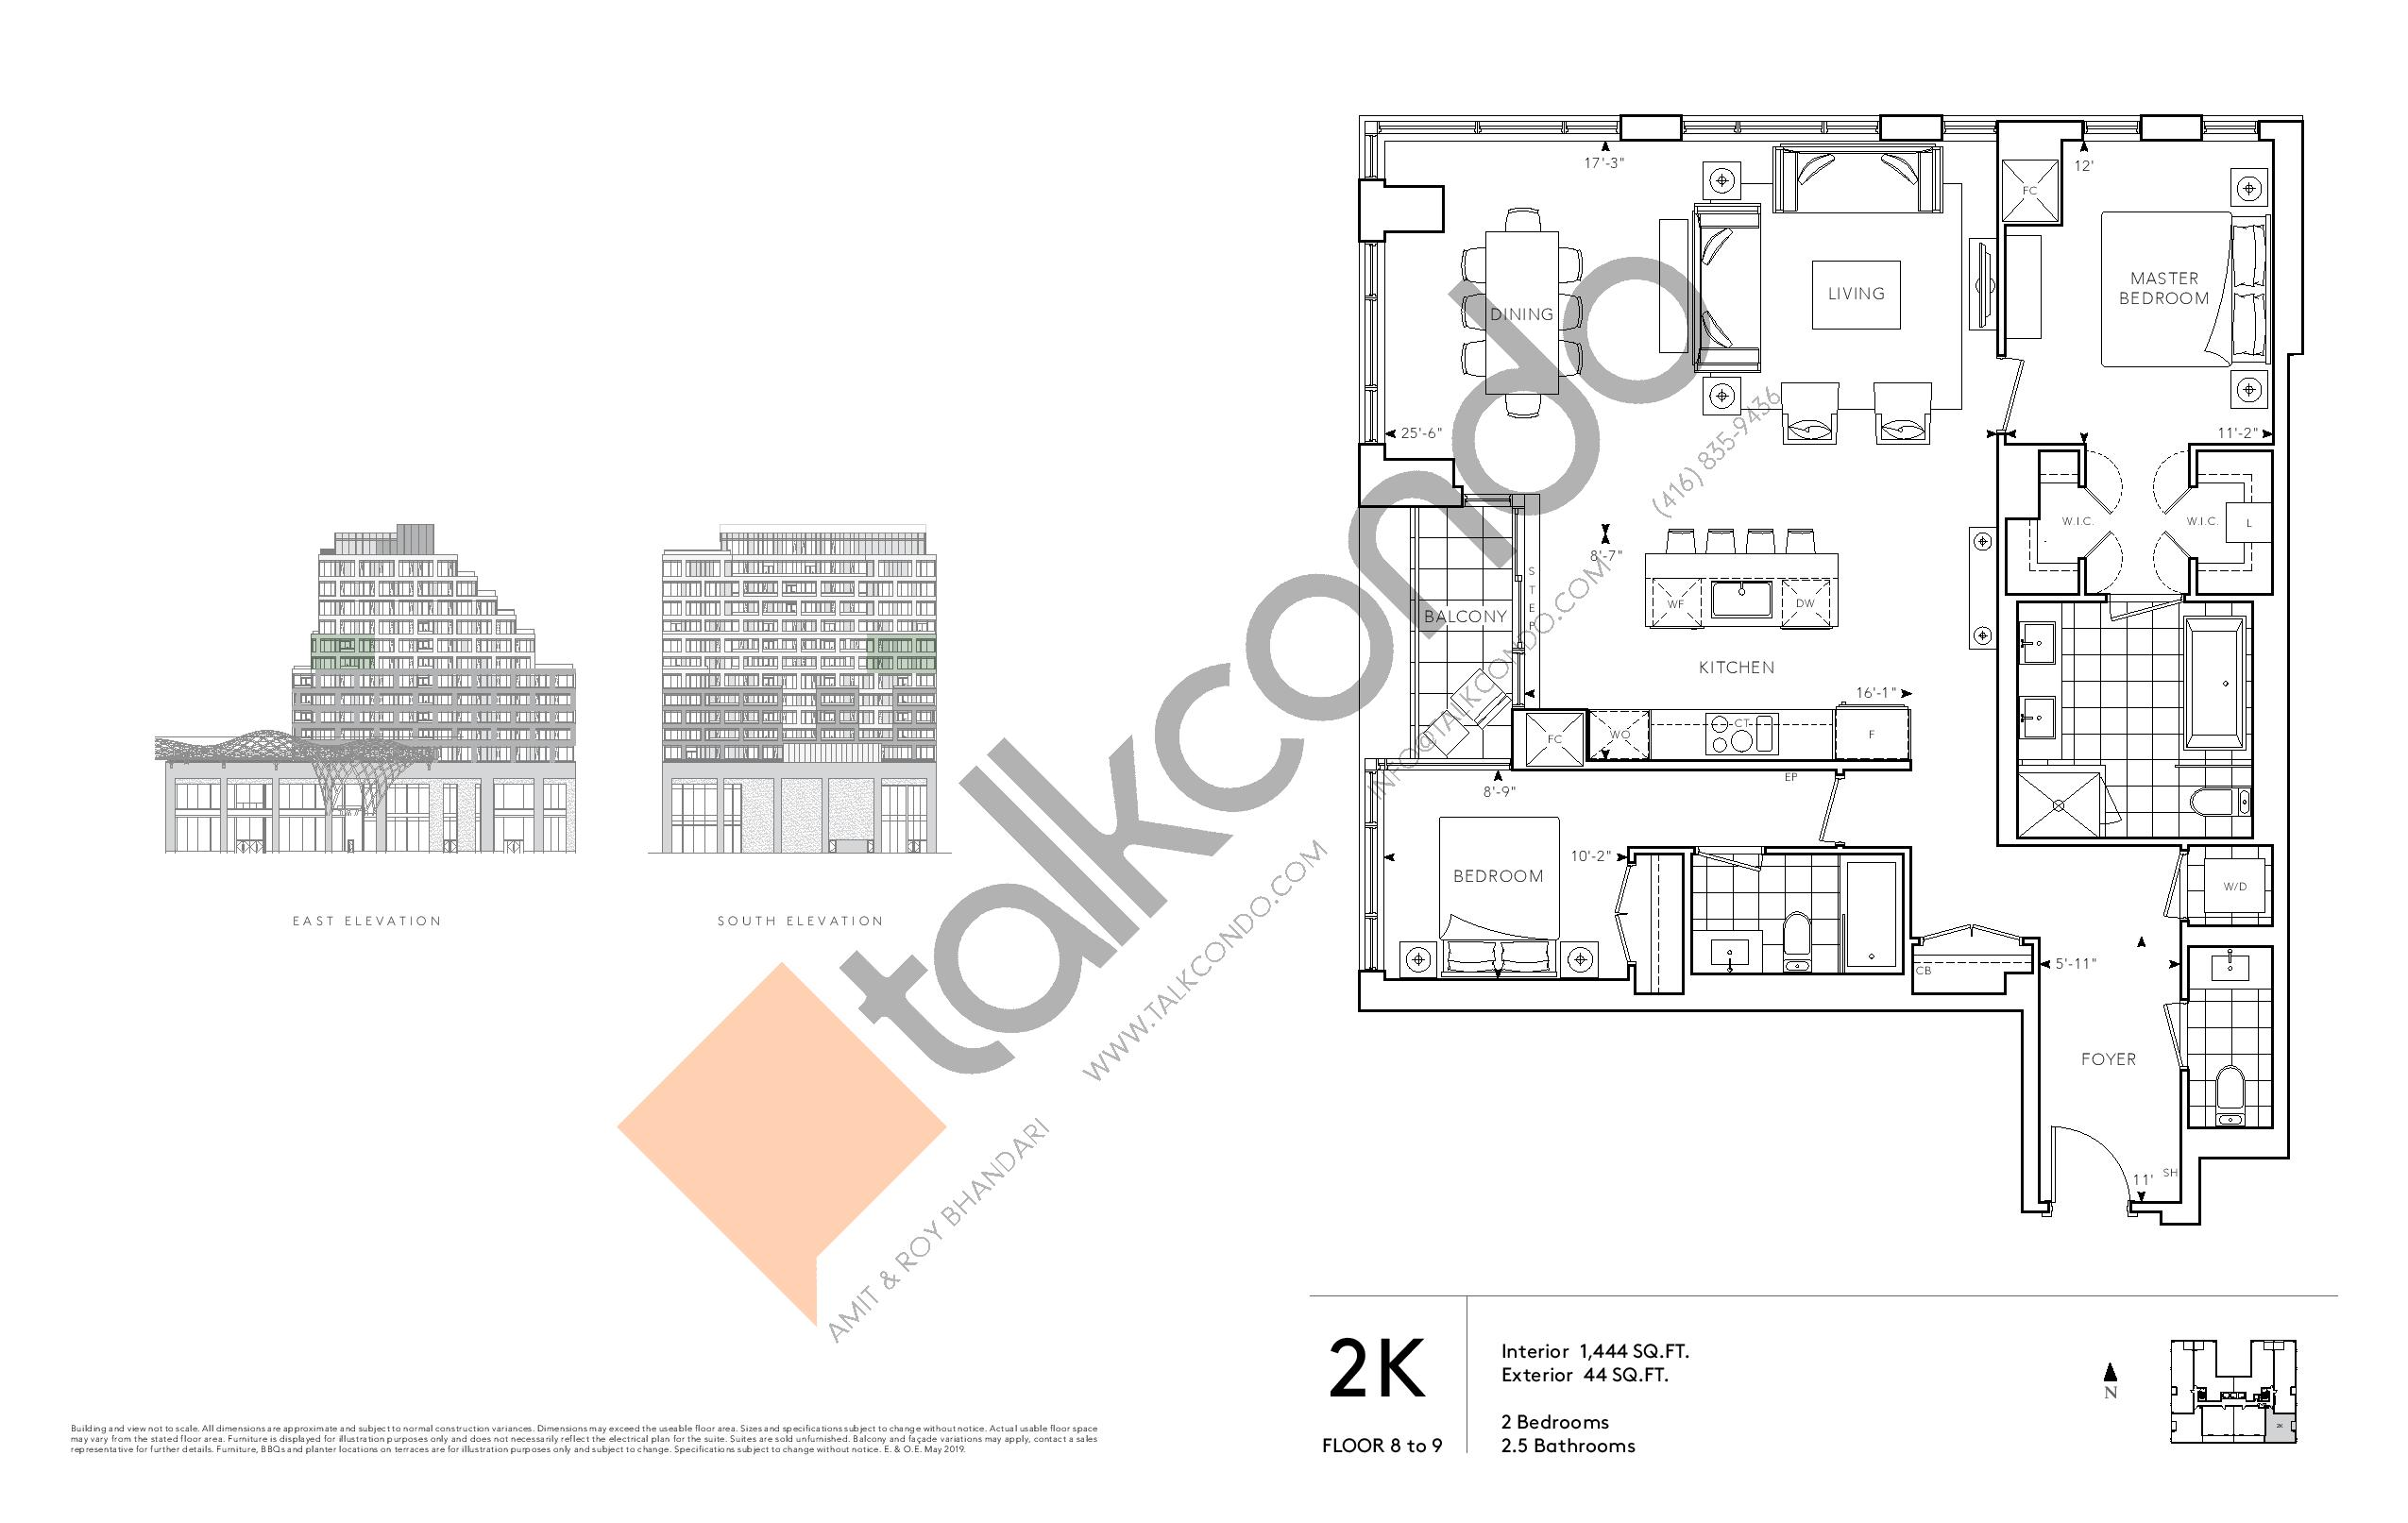 2K - Signature Series Floor Plan at Tridel at The Well Condos - 1444 sq.ft